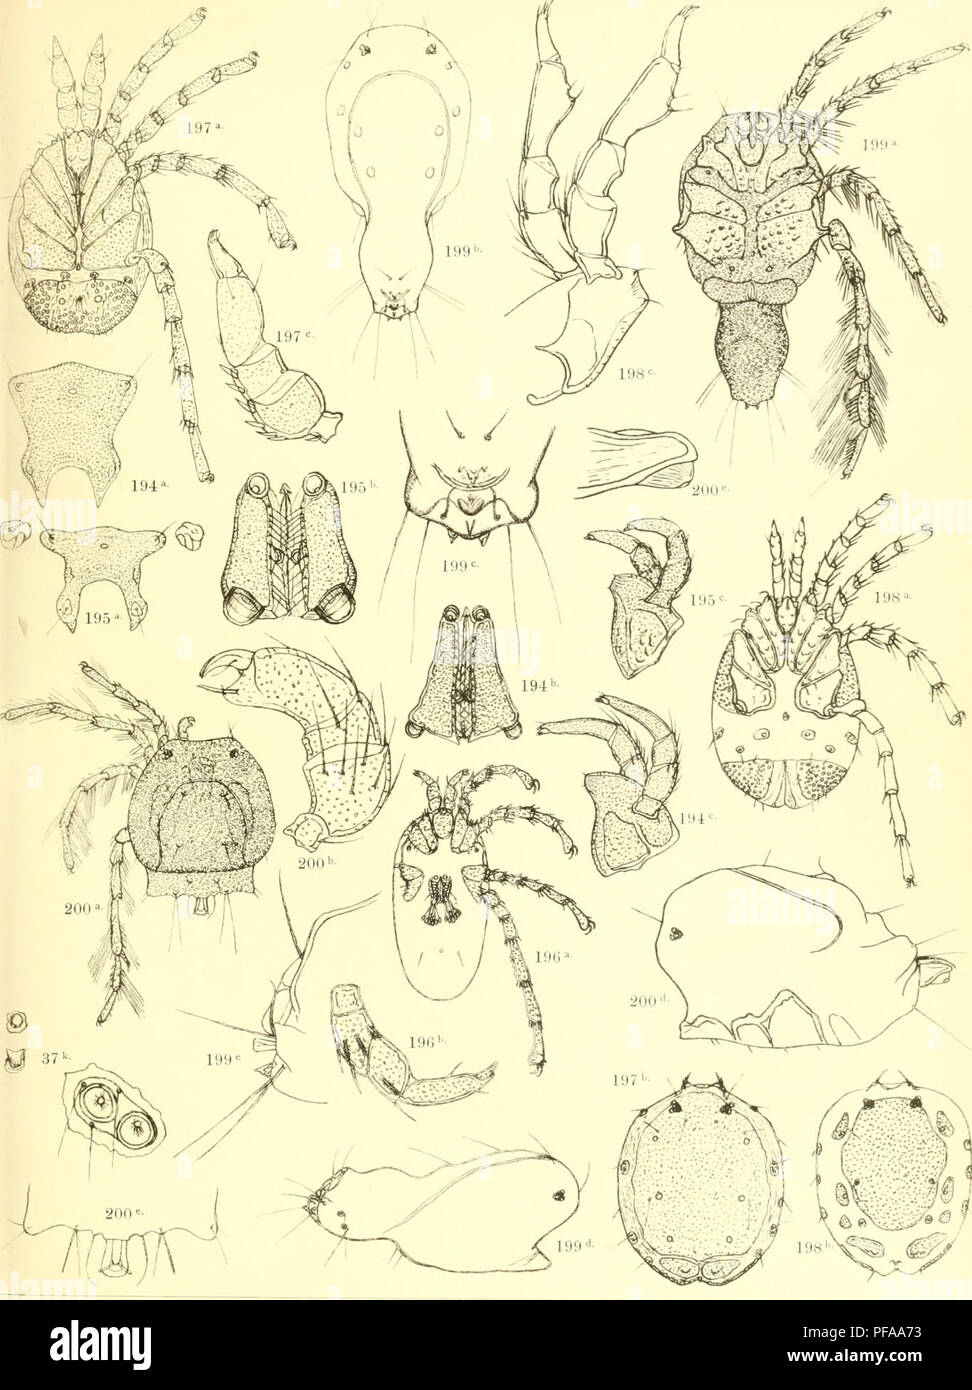 . Deutschlands Hydrachniden. Hydrachnidae; Mites. Zoologica XXII. iaf. LI.. R. Kersig ad nat. dcl. Verlag von Erwin Nägele in Stuttgart.. Please note that these images are extracted from scanned page images that may have been digitally enhanced for readability - coloration and appearance of these illustrations may not perfectly resemble the original work.. Piersig, R. Stuttgart : E. Nägele - Stock Image